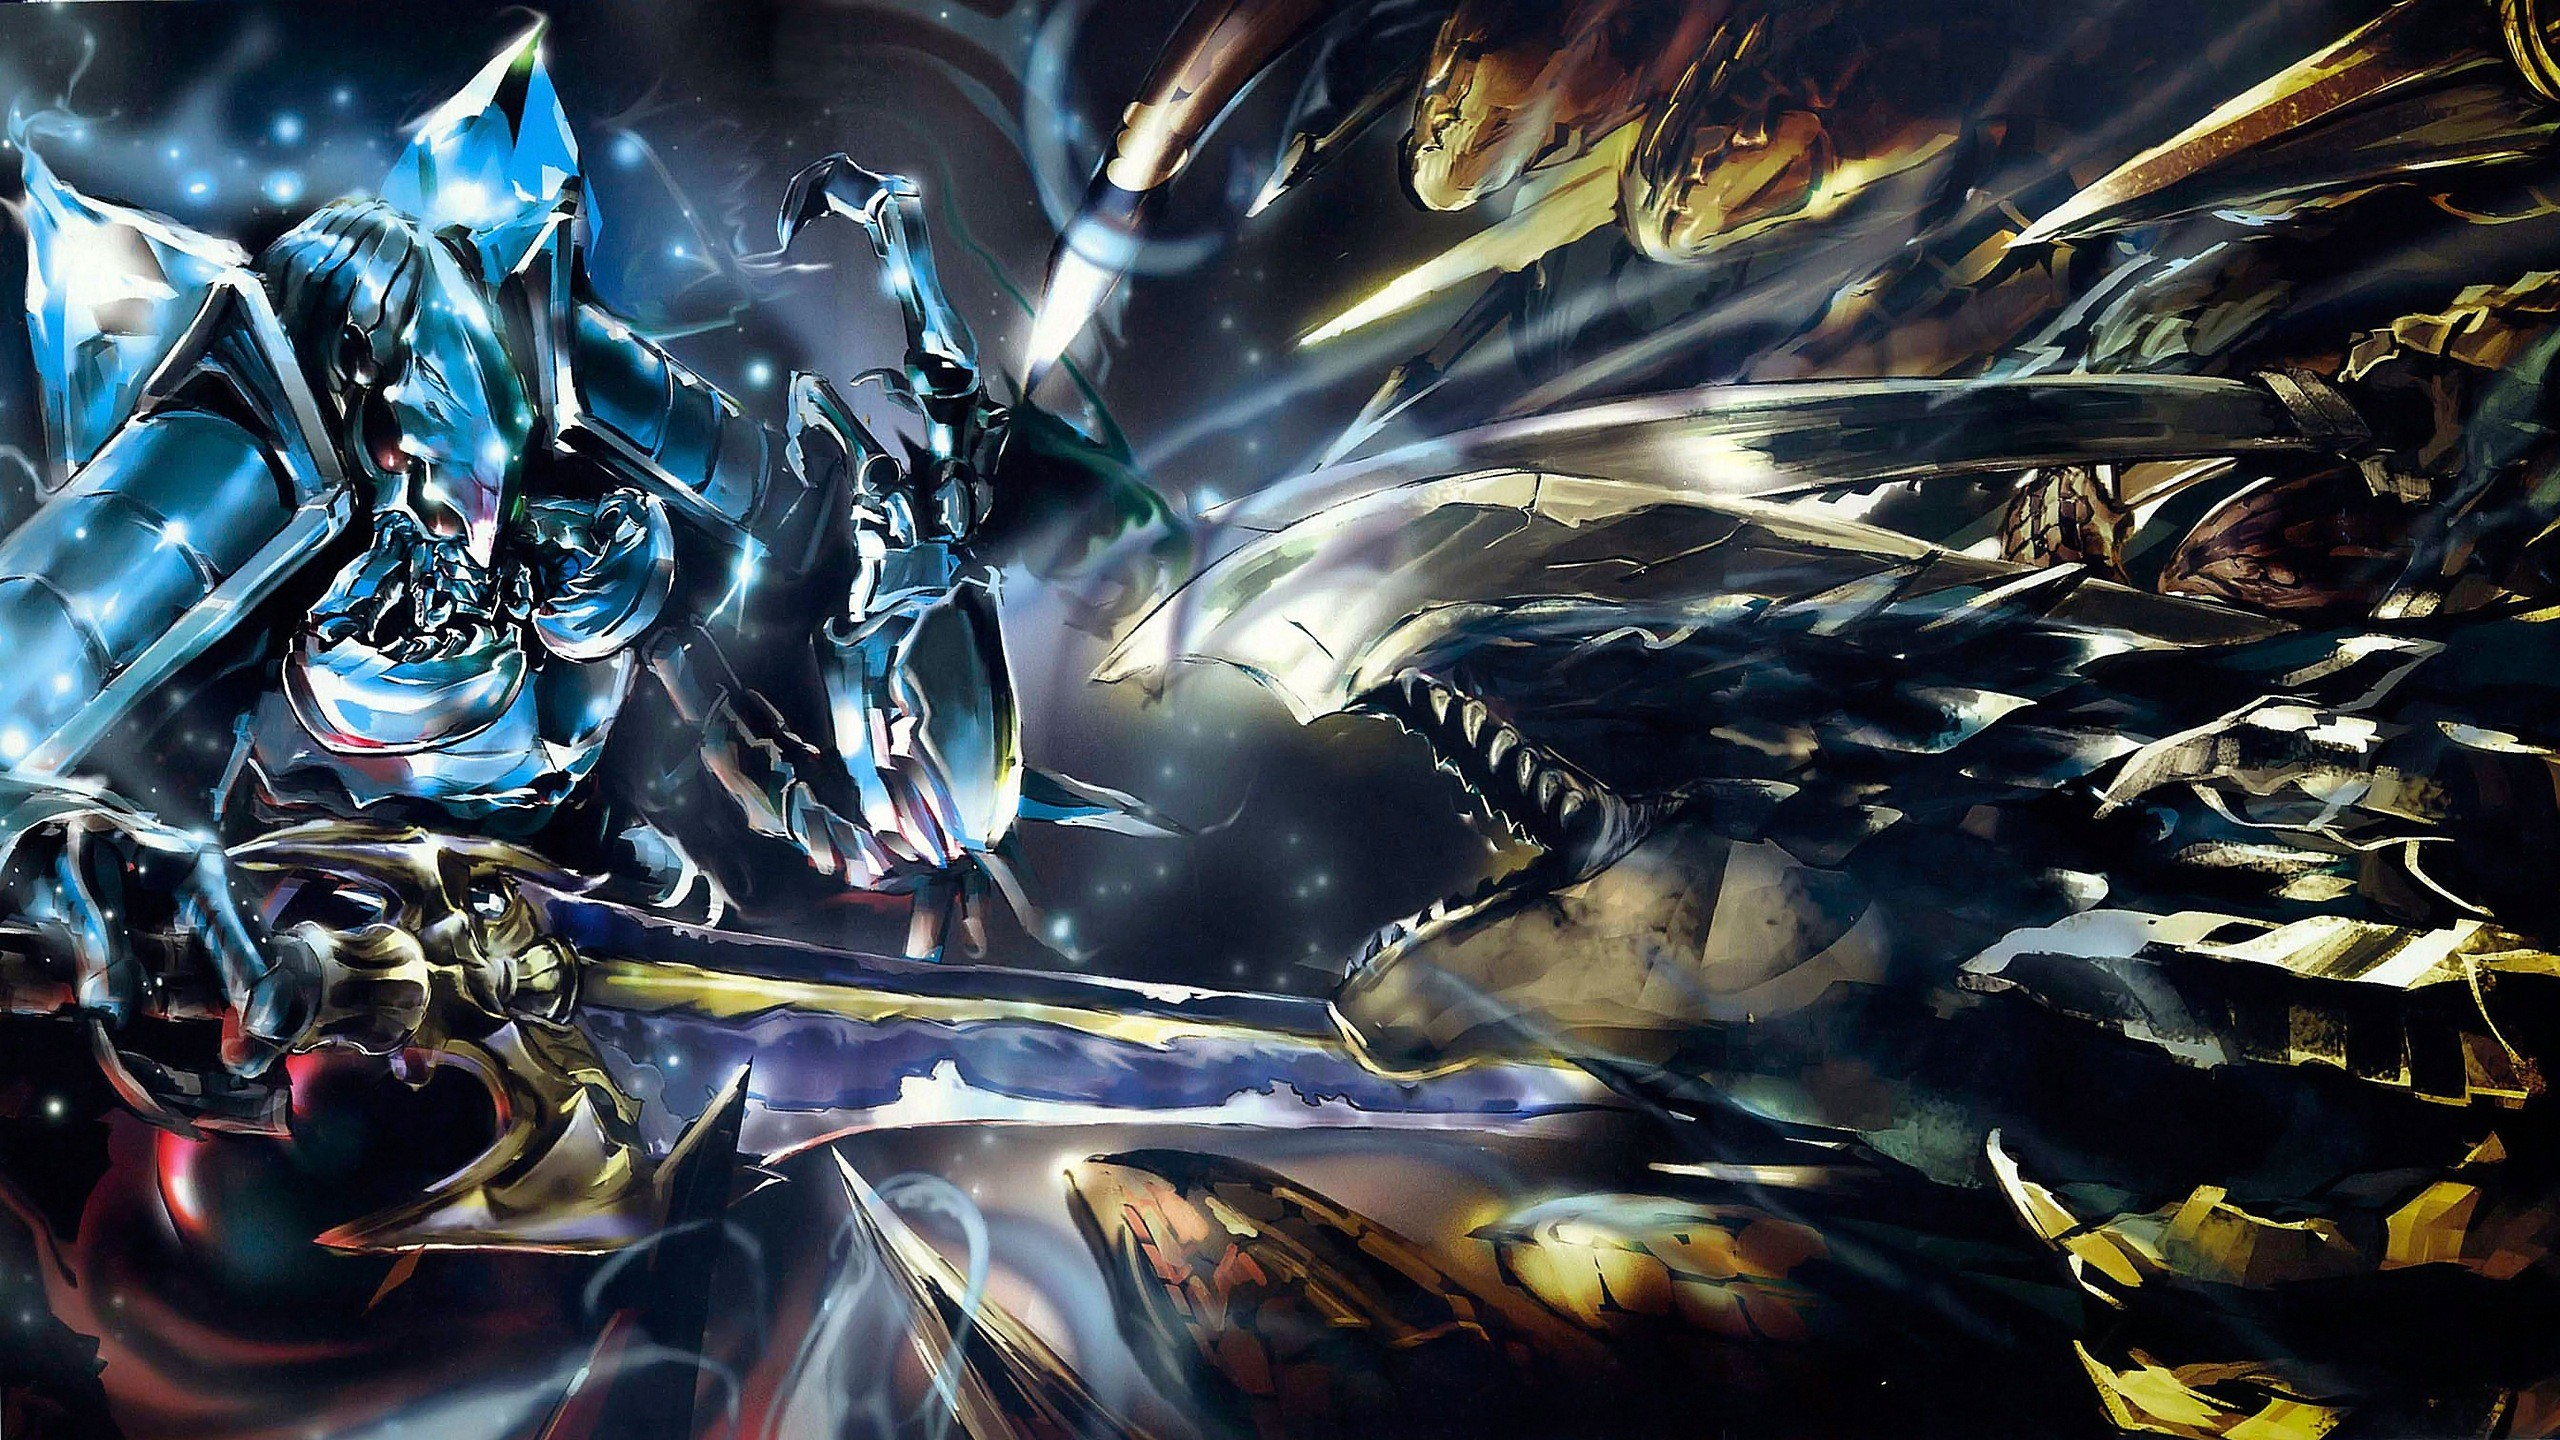 Anime Overlord Ainz Ooal Gown Overlord Wallpaper Overlord Pinterest Anime Wallpaper And Manga